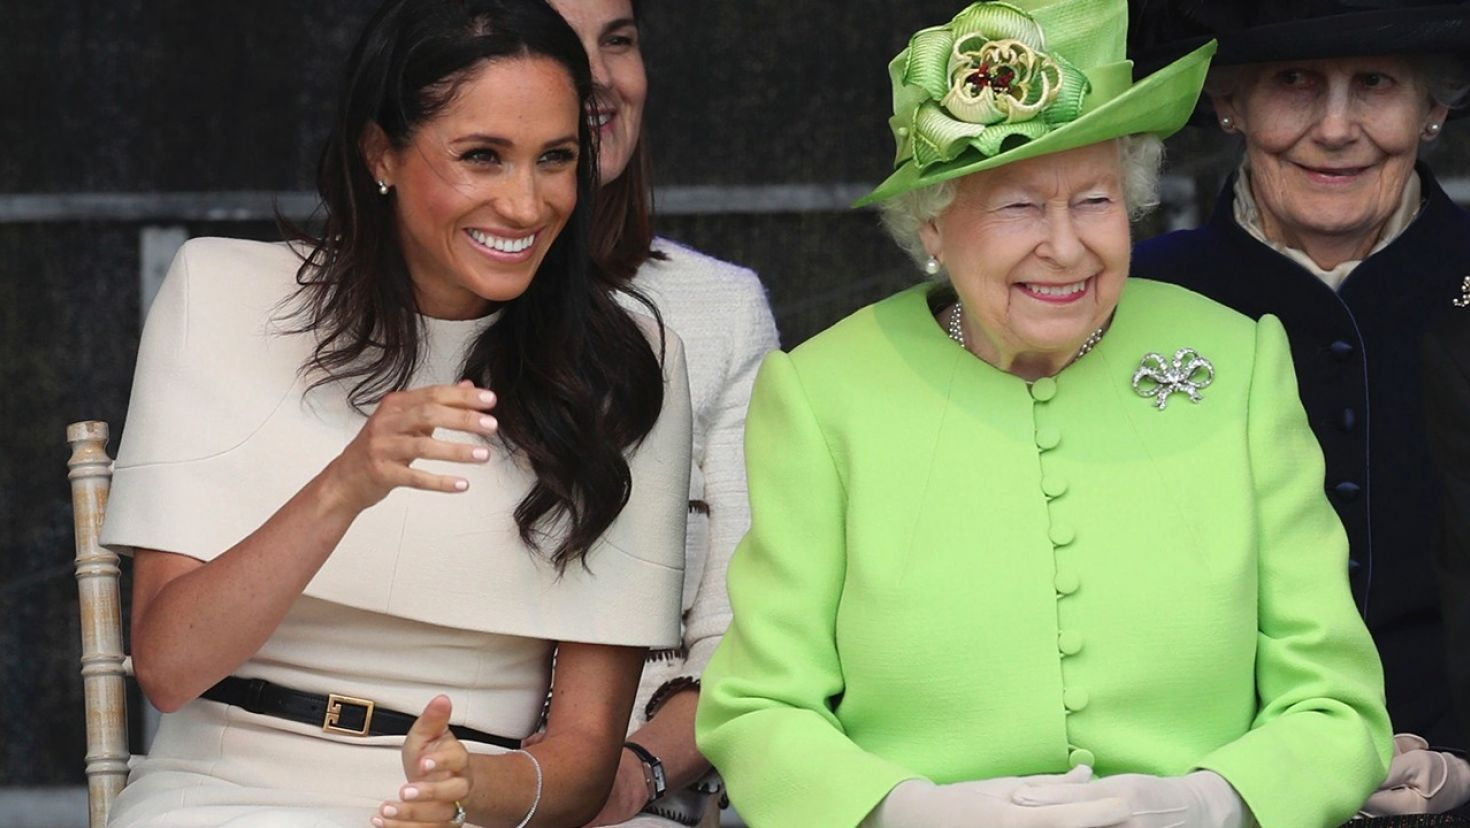 Meghan Markle's 37th birthday has a special meaning for